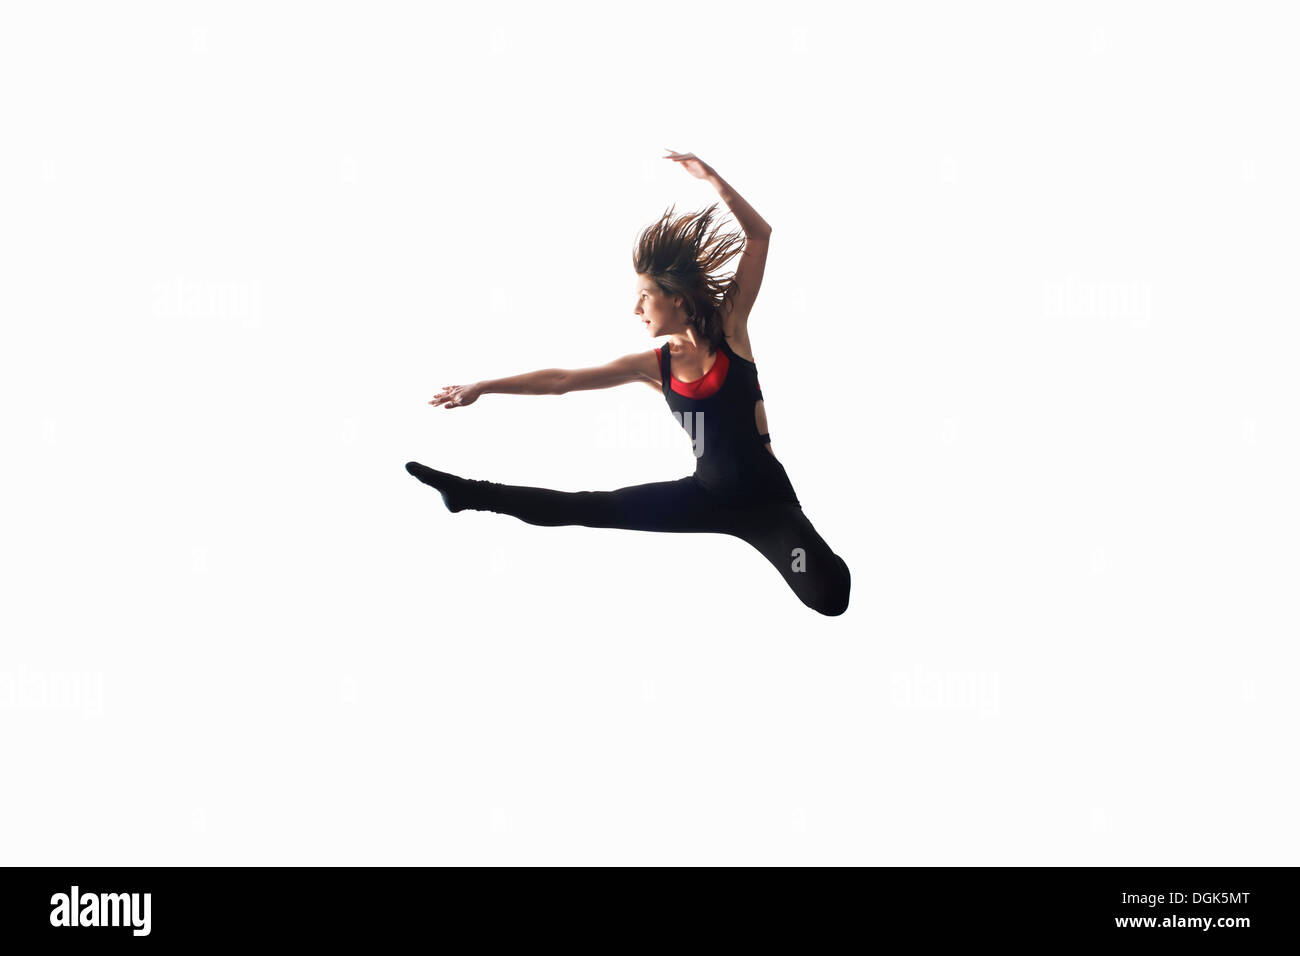 Dancer in midair on white background - Stock Image